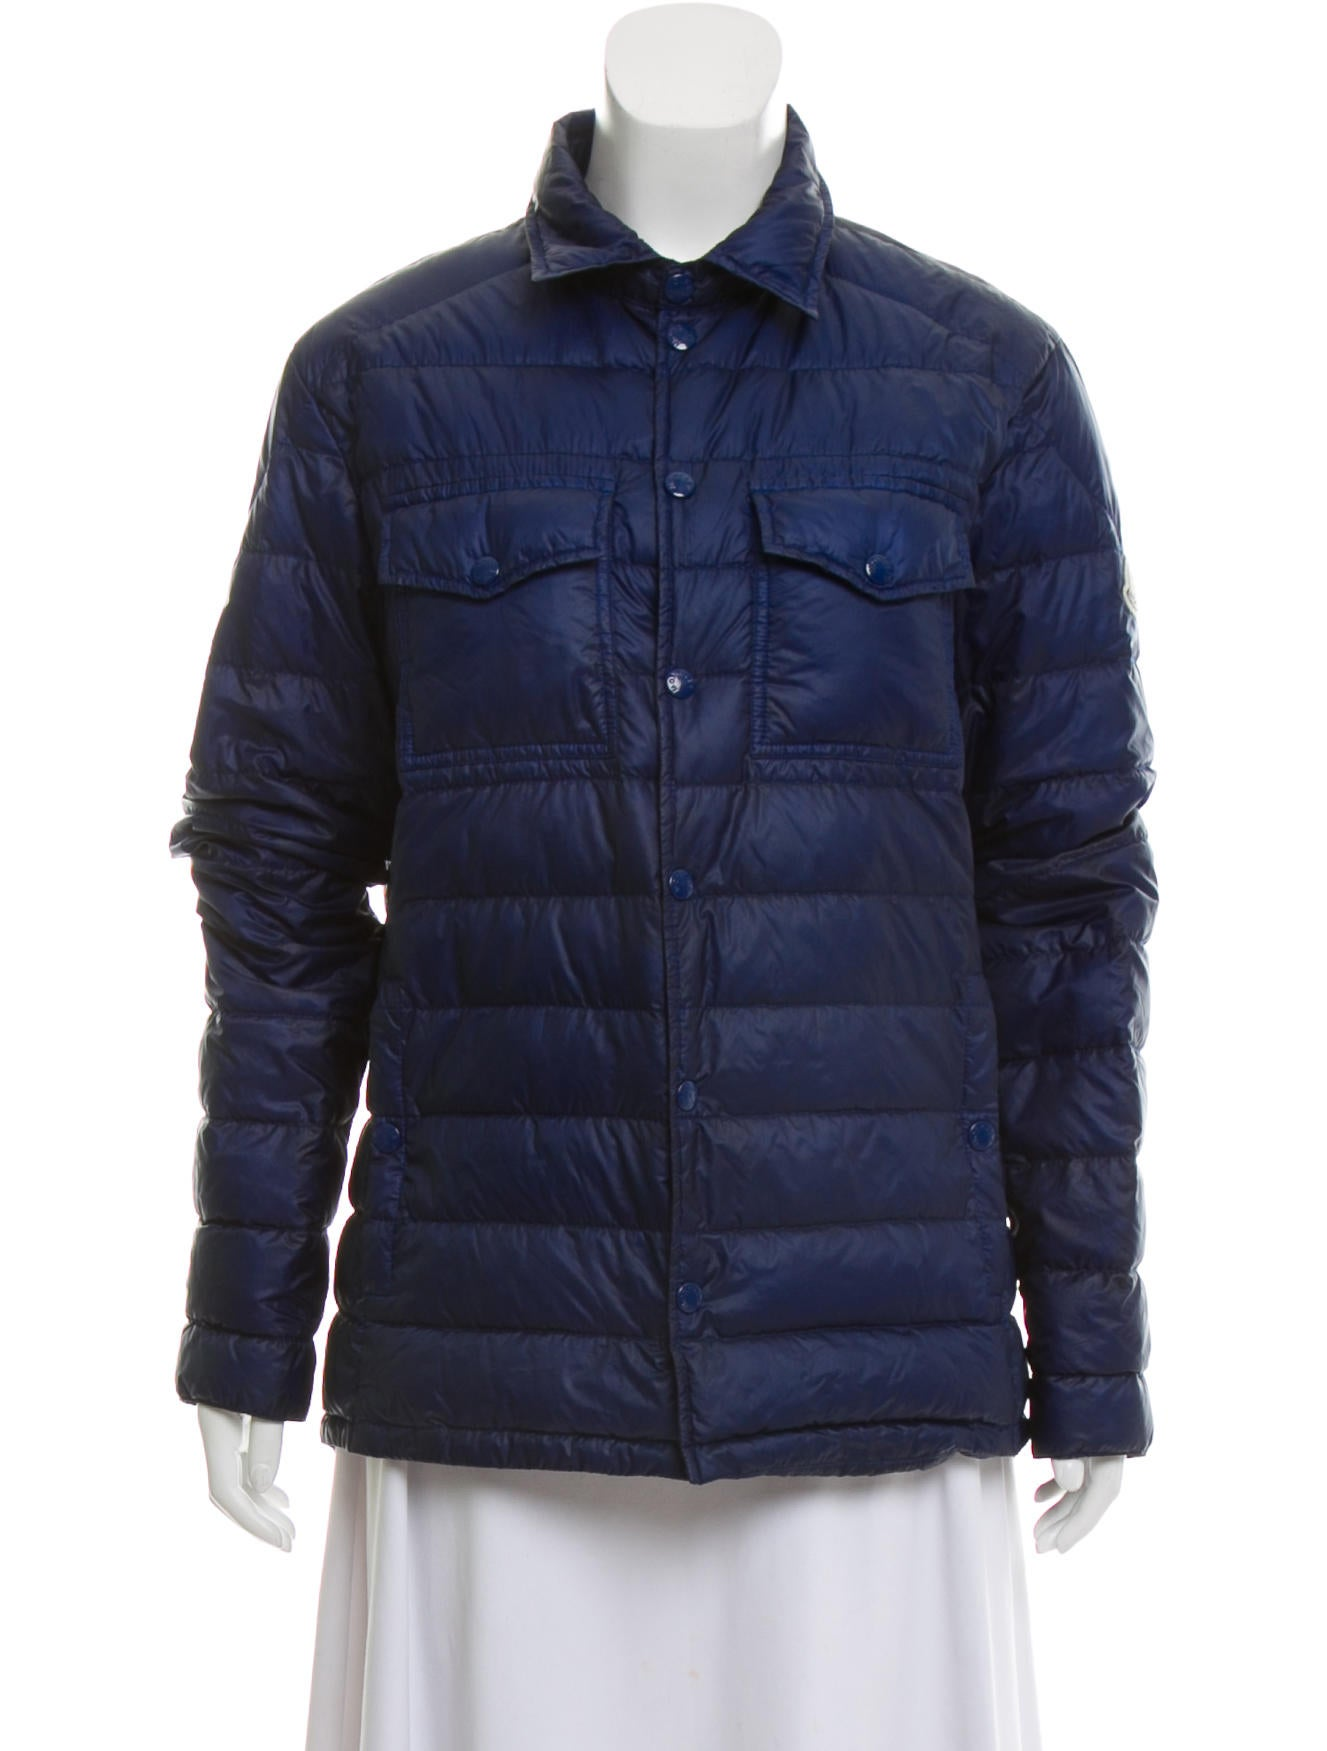 2d597a73c Moncler Benitoite Quilted Down Jacket - Clothing - MOC40118   The ...